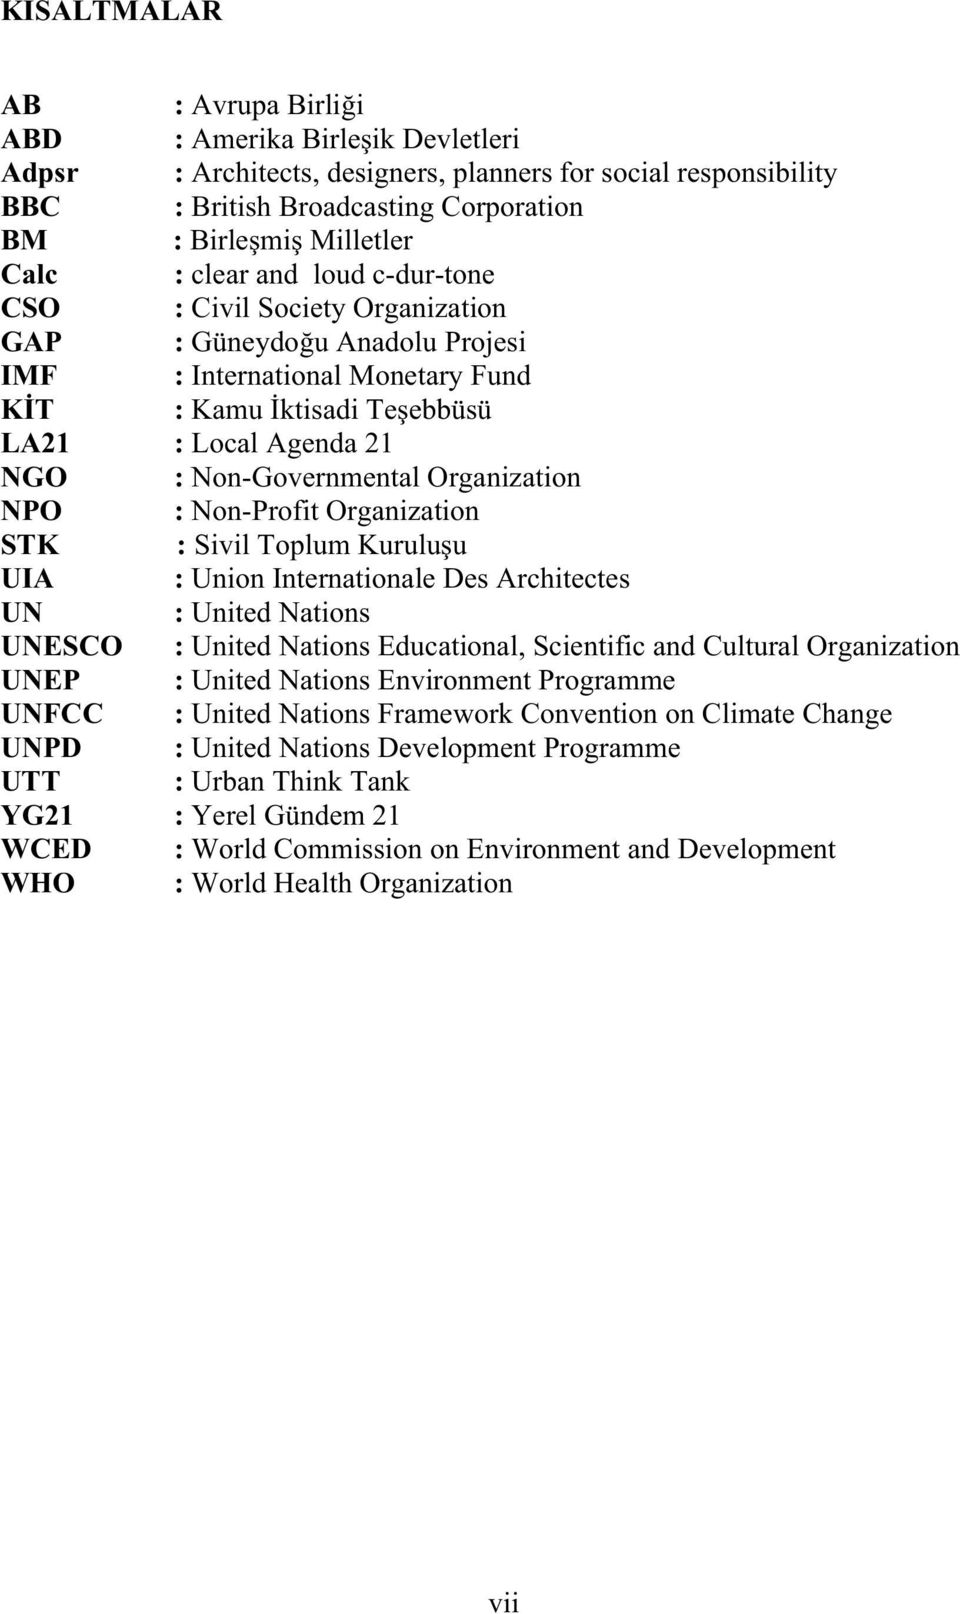 Organization NPO : Non-Profit Organization STK : Sivil Toplum Kuruluu UIA : Union Internationale Des Architectes UN : United Nations UNESCO : United Nations Educational, Scientific and Cultural